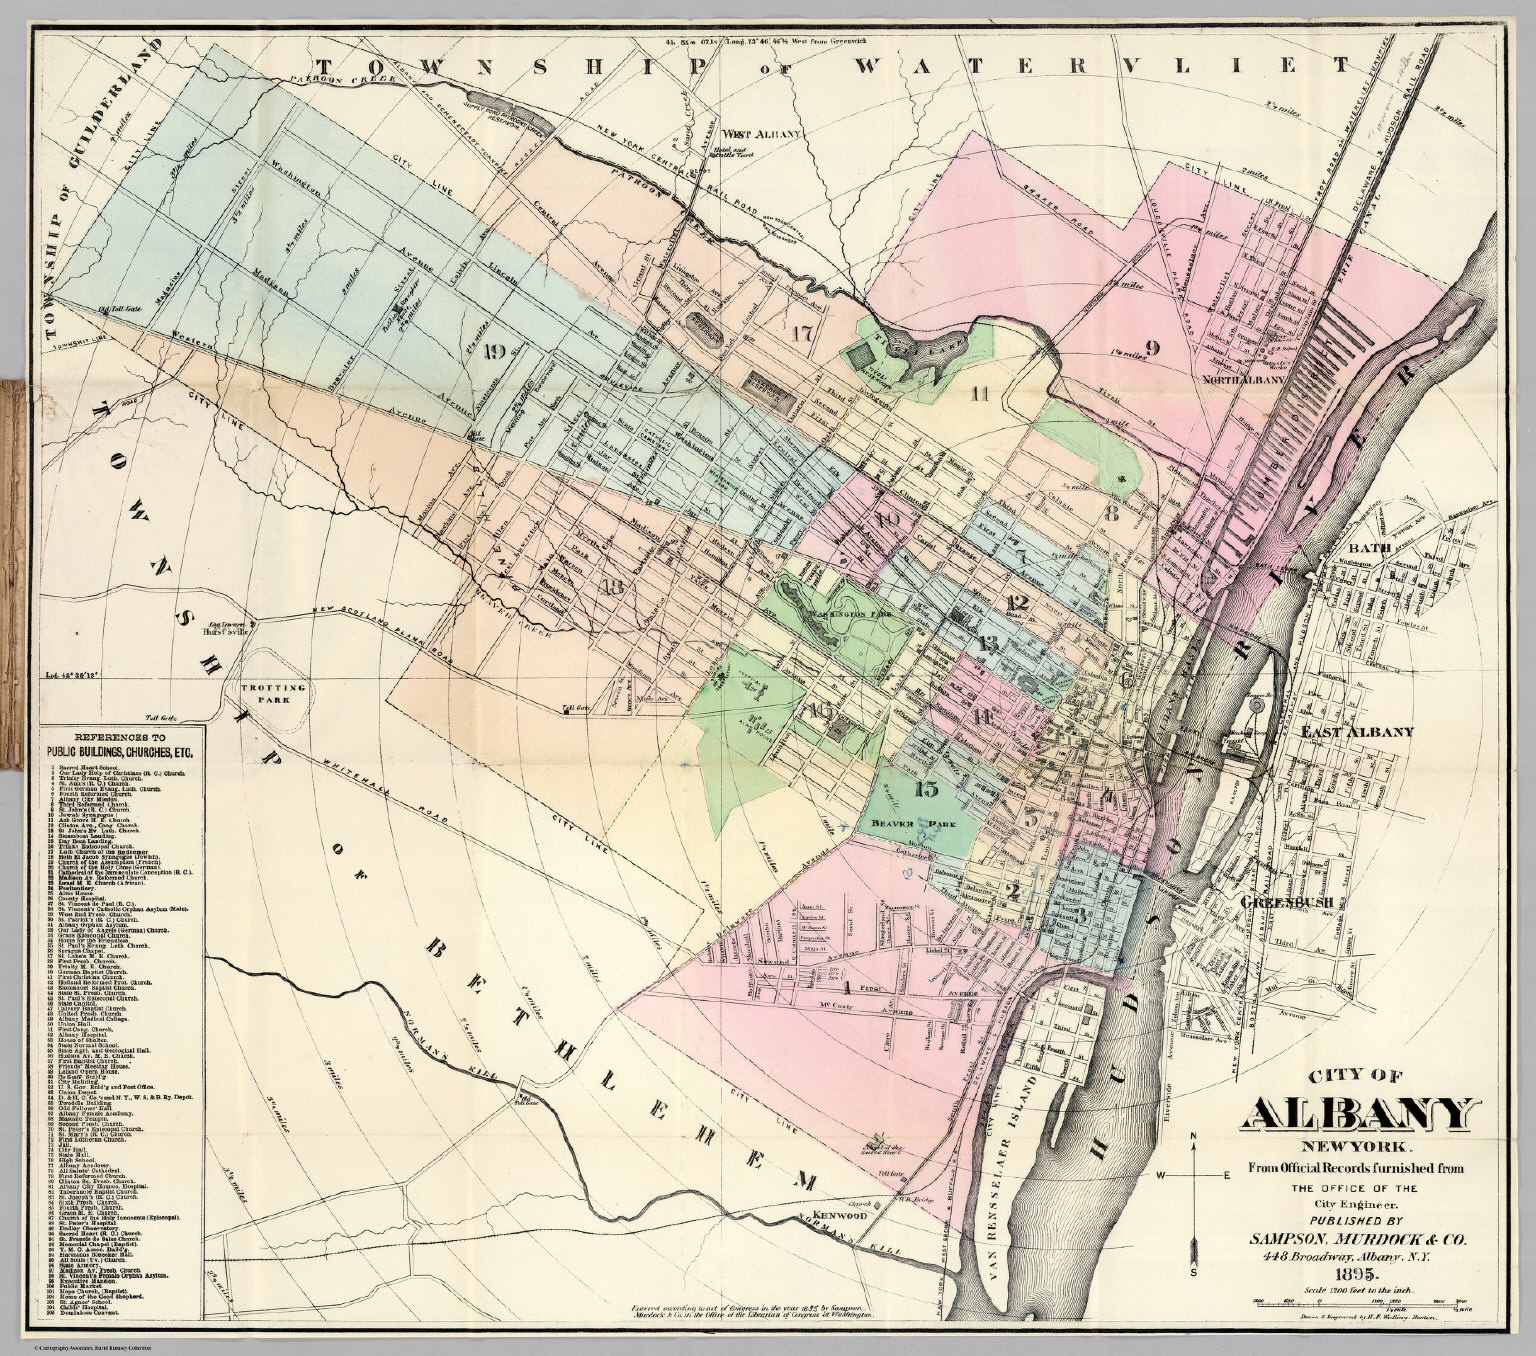 Albany New York - David Rumsey Historical Map Collection